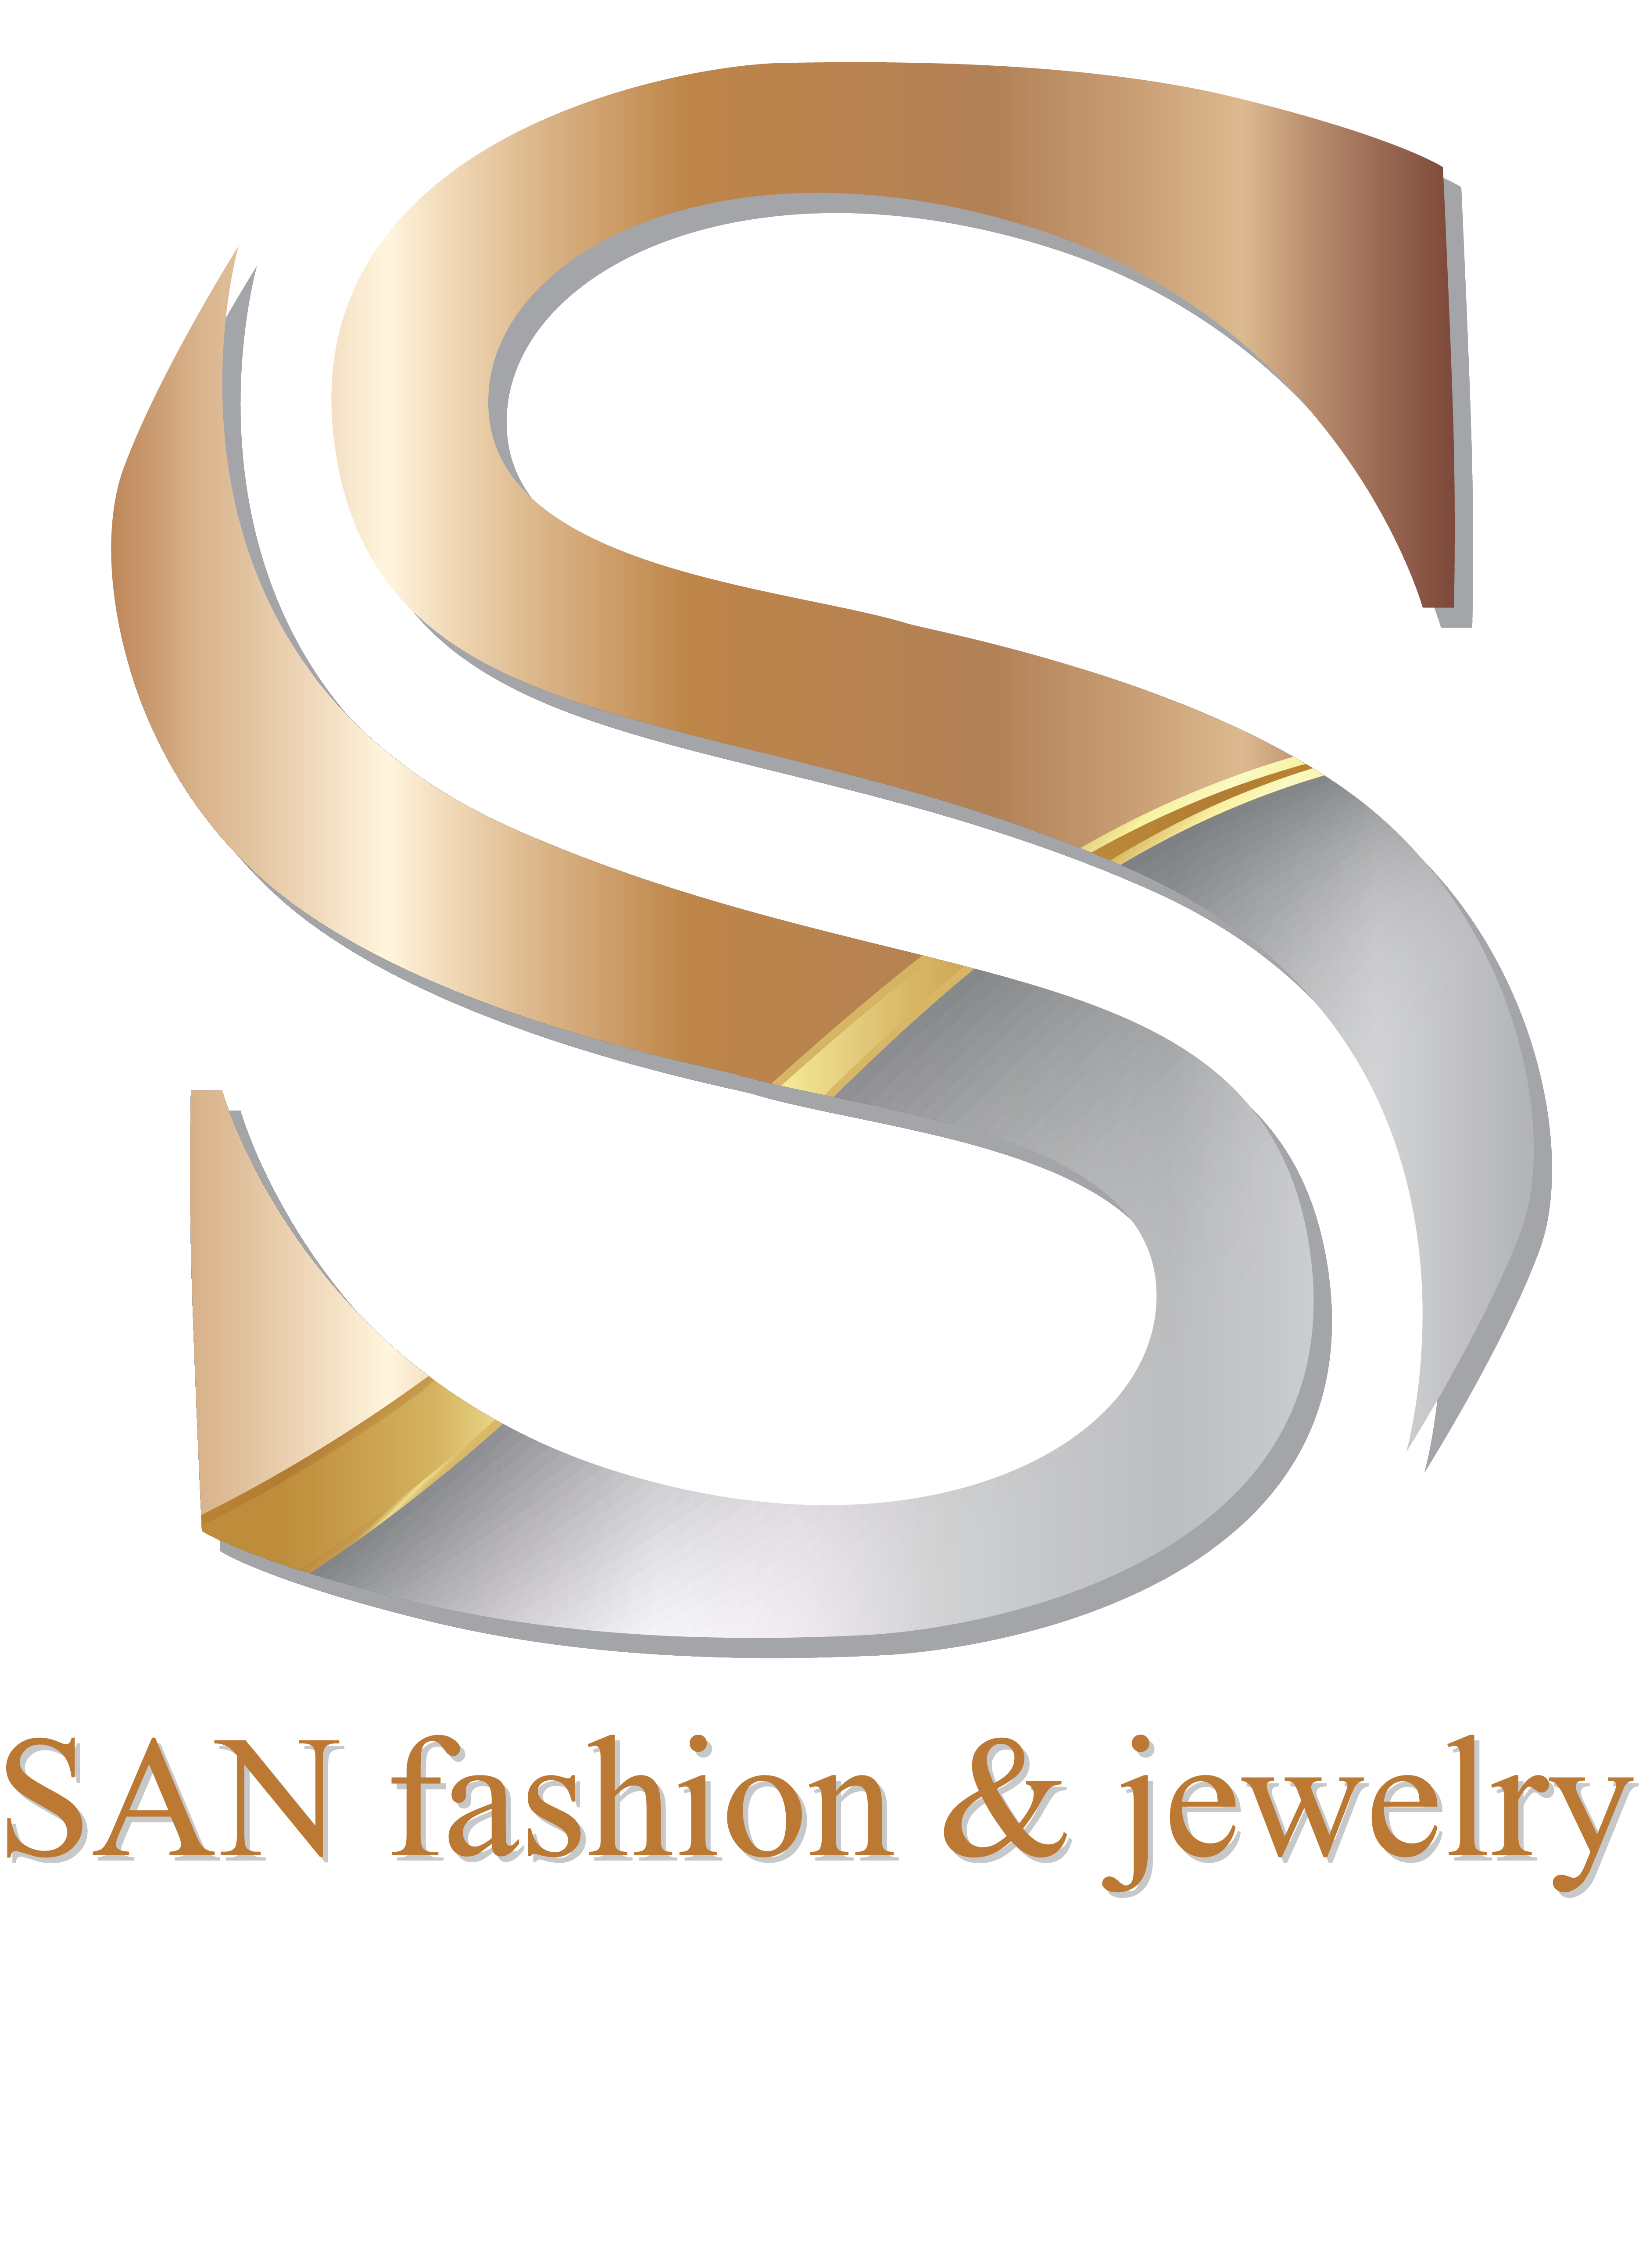 SAN fashion & jewelry